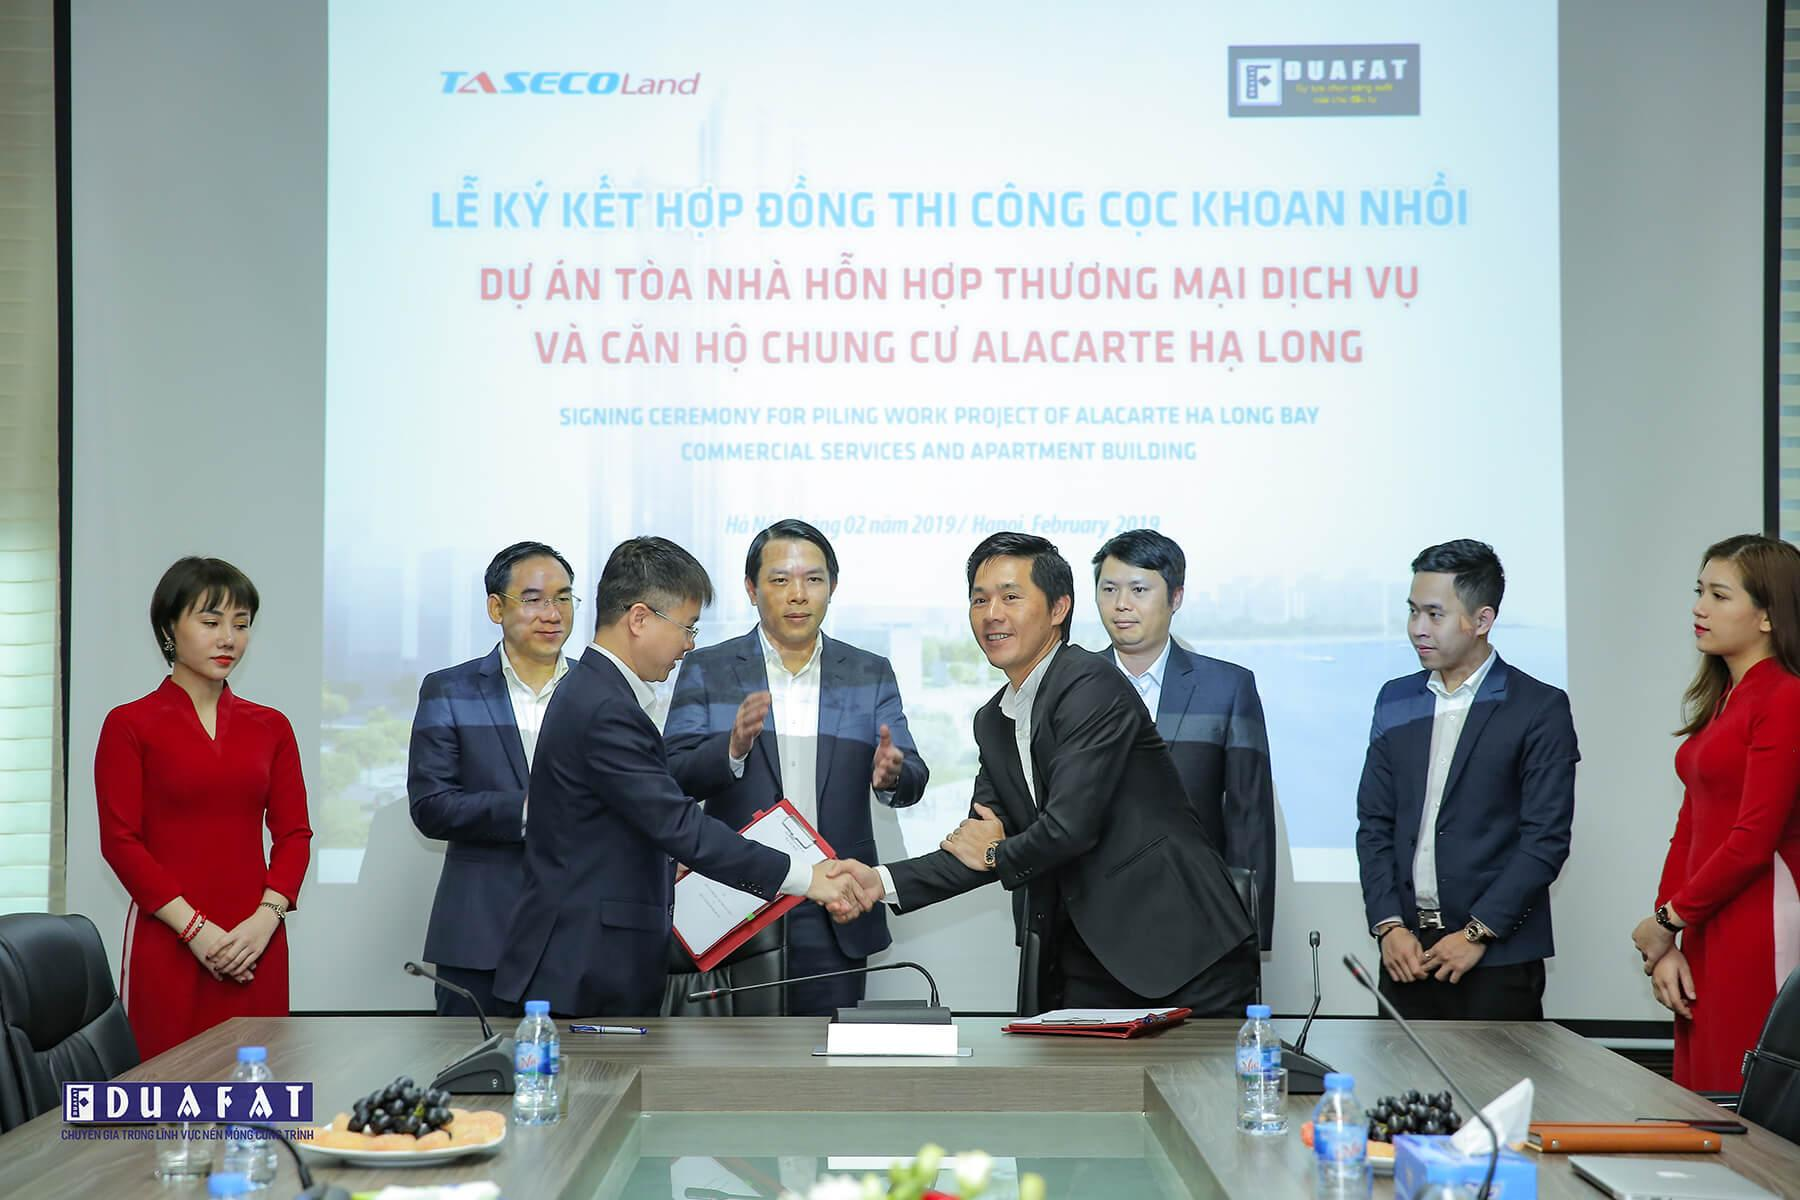 SIGNING CEREMONY FOR PILING WORK PROJECT OF A LA CARTE HA LONG BAY CONDOTEL